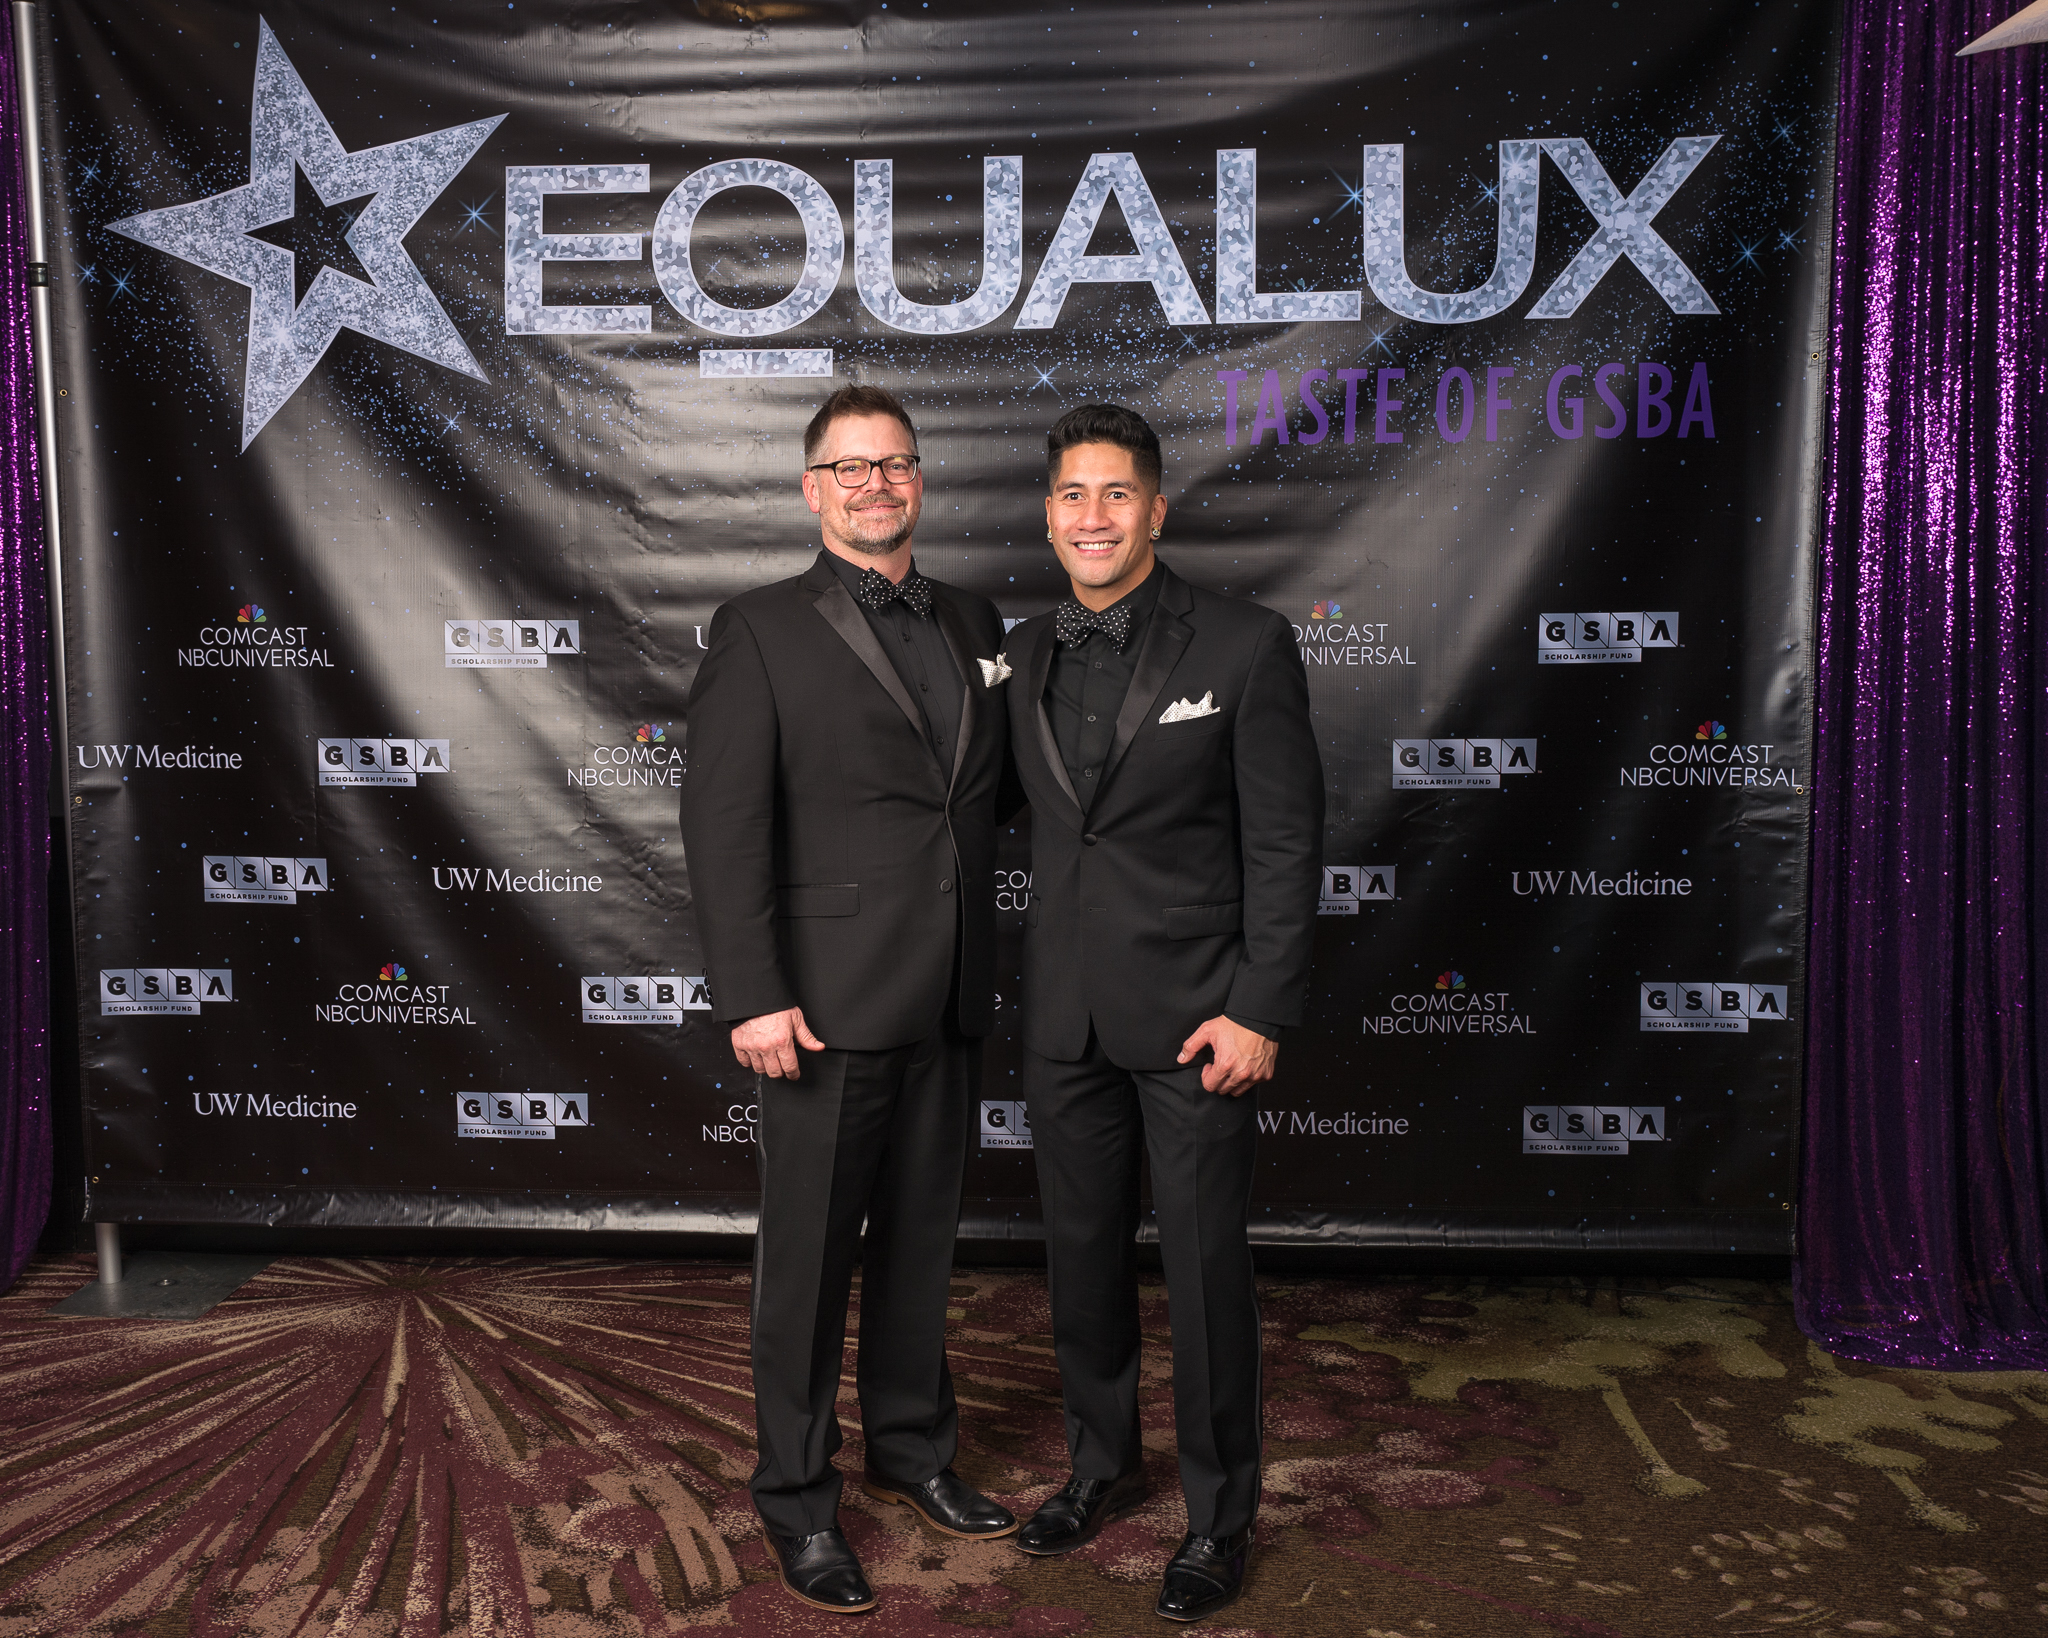 111718_GSBA EQUALUX at The Westin Seattle (Credit- Nate Gowdy)-157.jpg